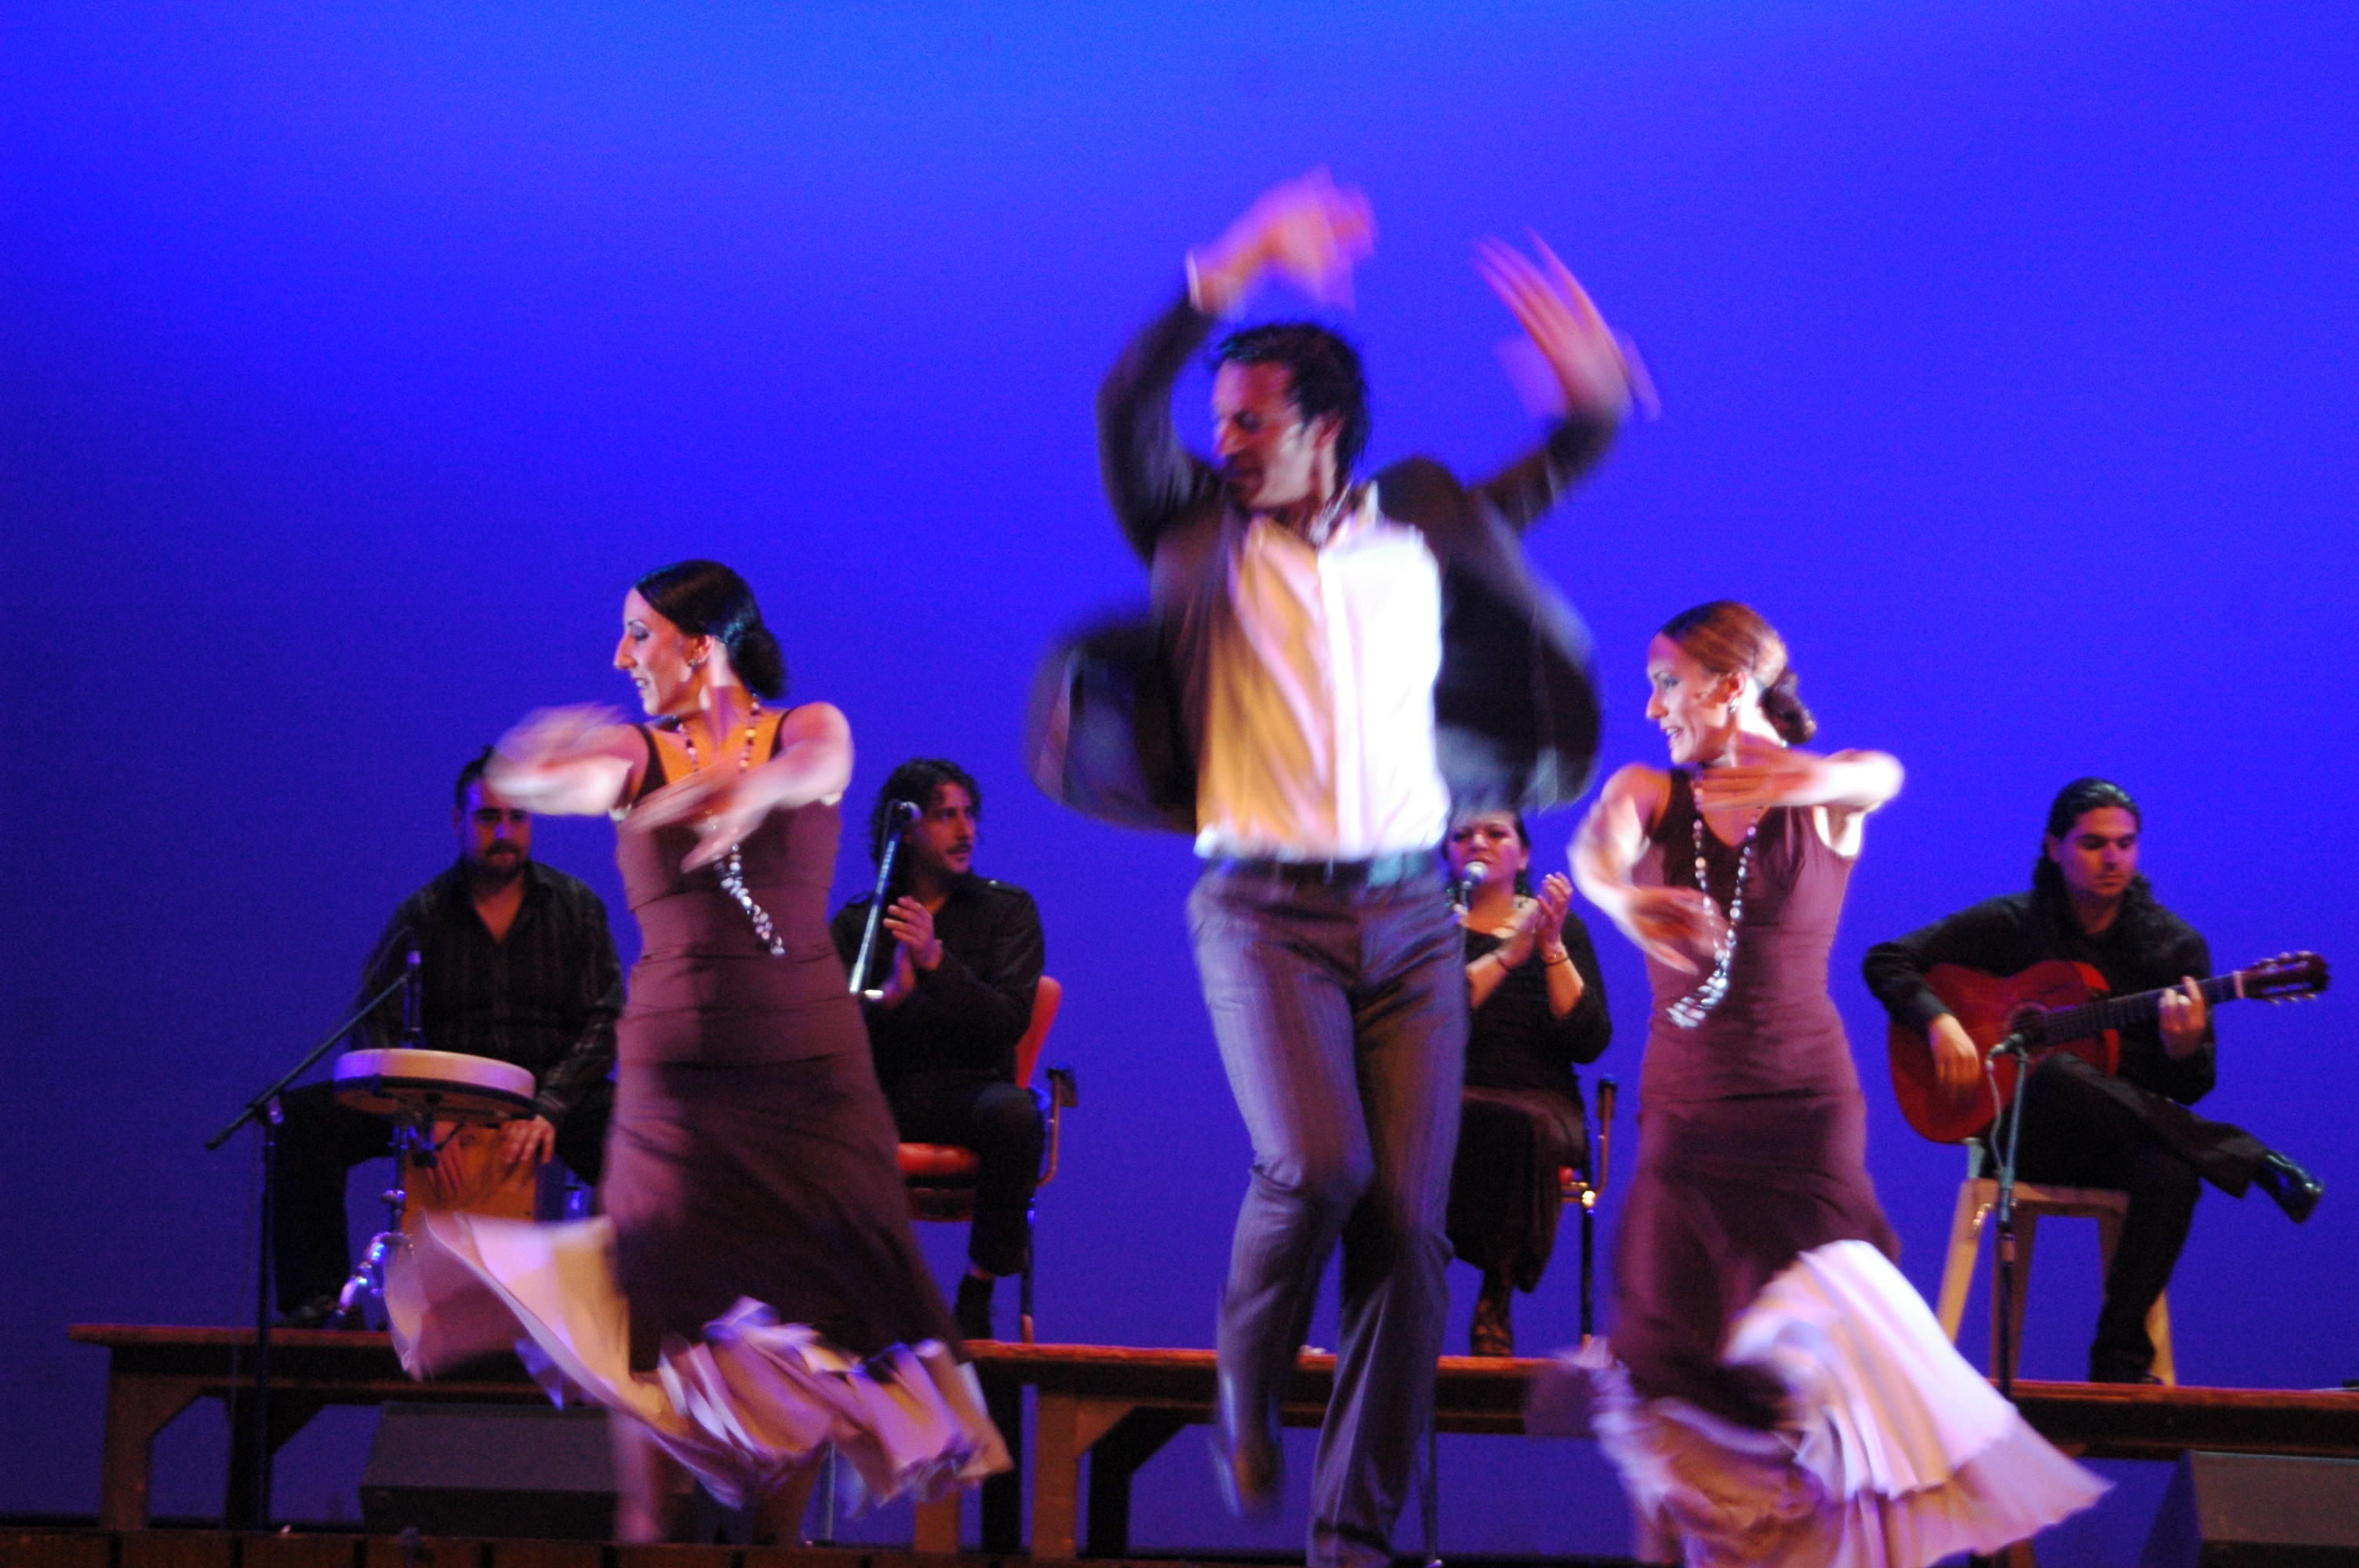 Flamenco, the vibrant dance form from Spain